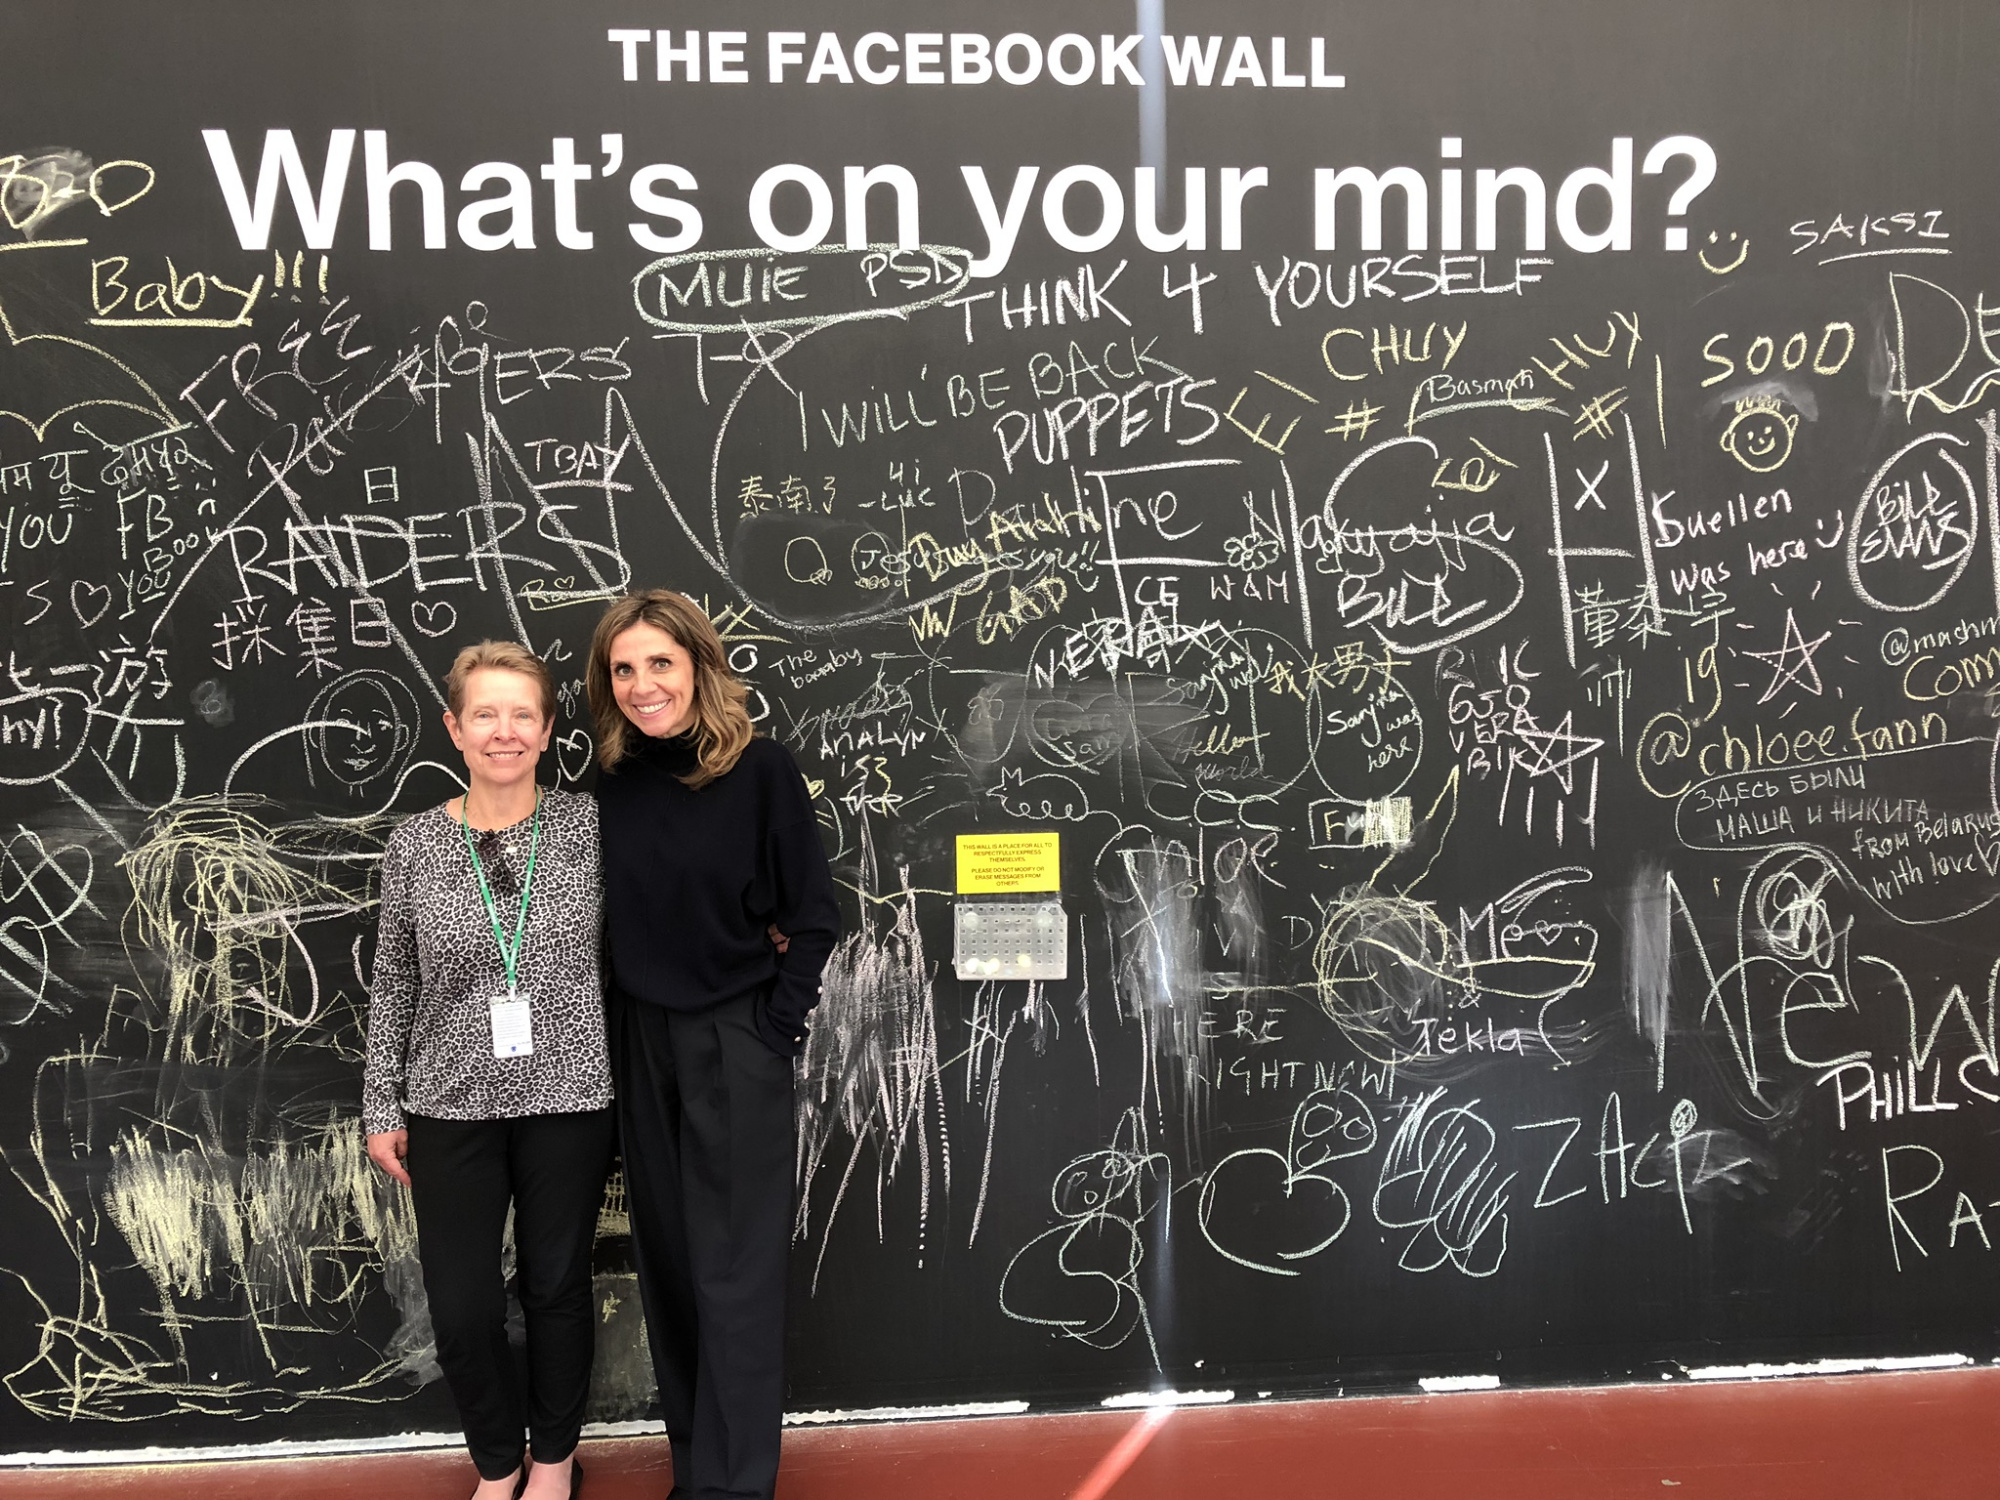 In front of the Facebook wall with Lady Nicola Mendelsohn